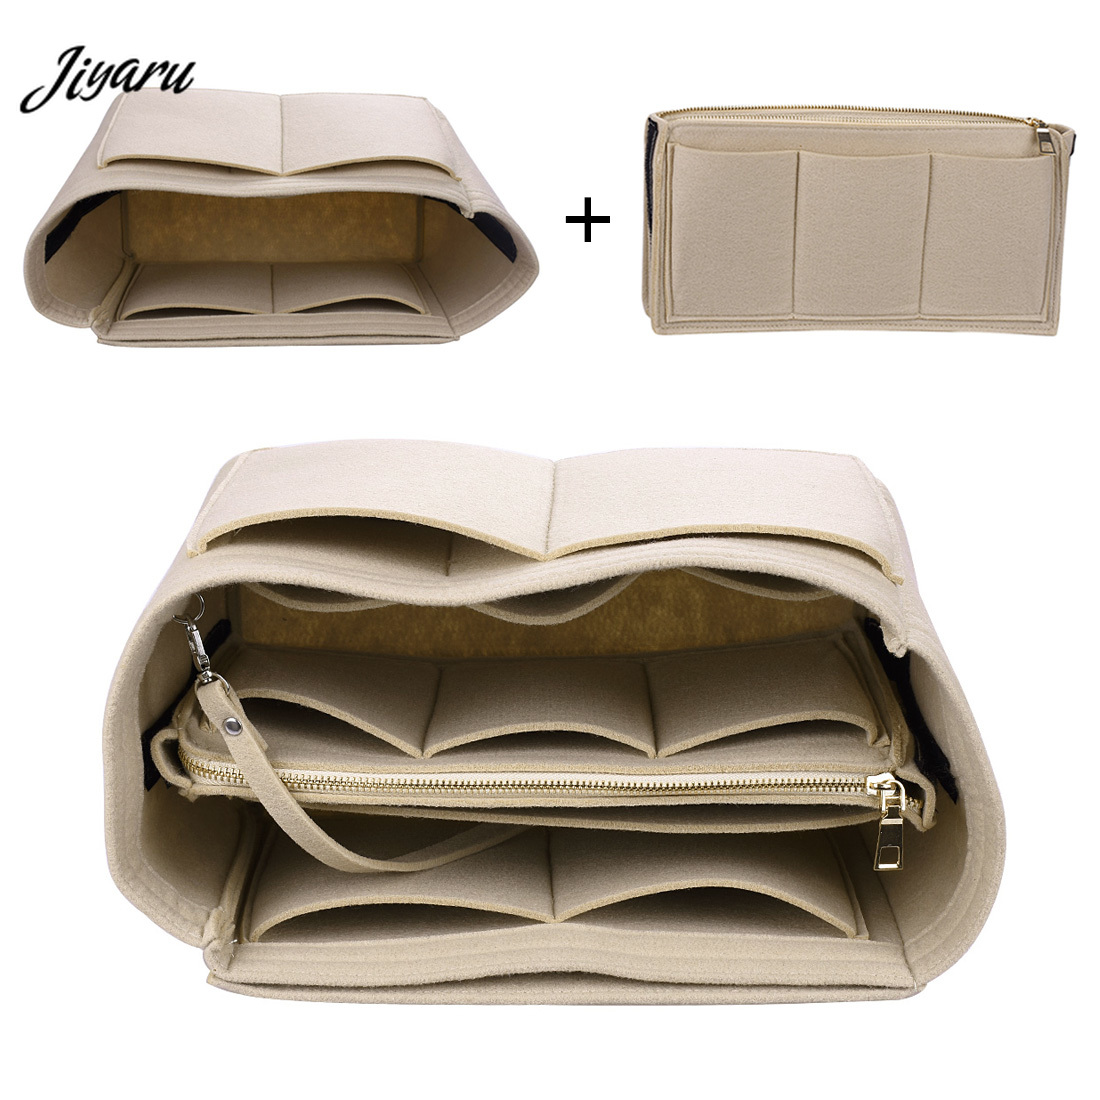 Brand Make Up Organizer Felt Insert Bag For Handbag Travel Inner Purse Portable Cosmetic Bag Organizer Suitable For Neverfull